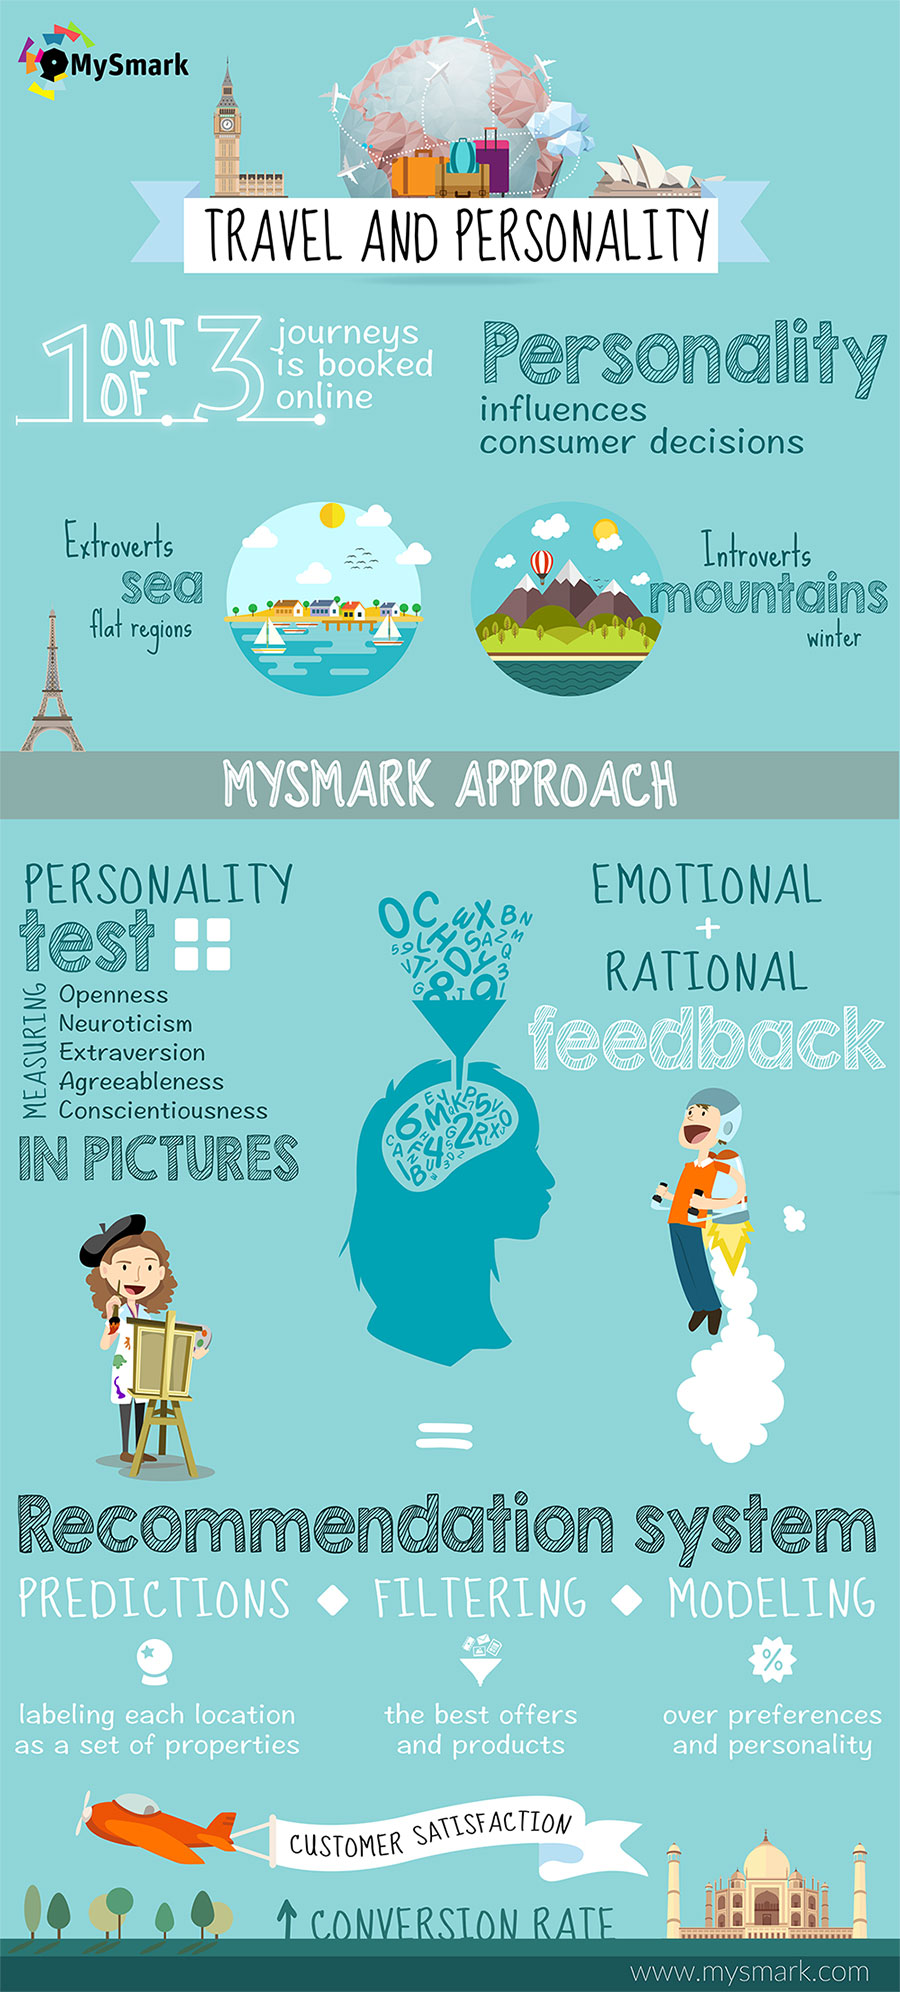 Travel-and-Personality-infographic